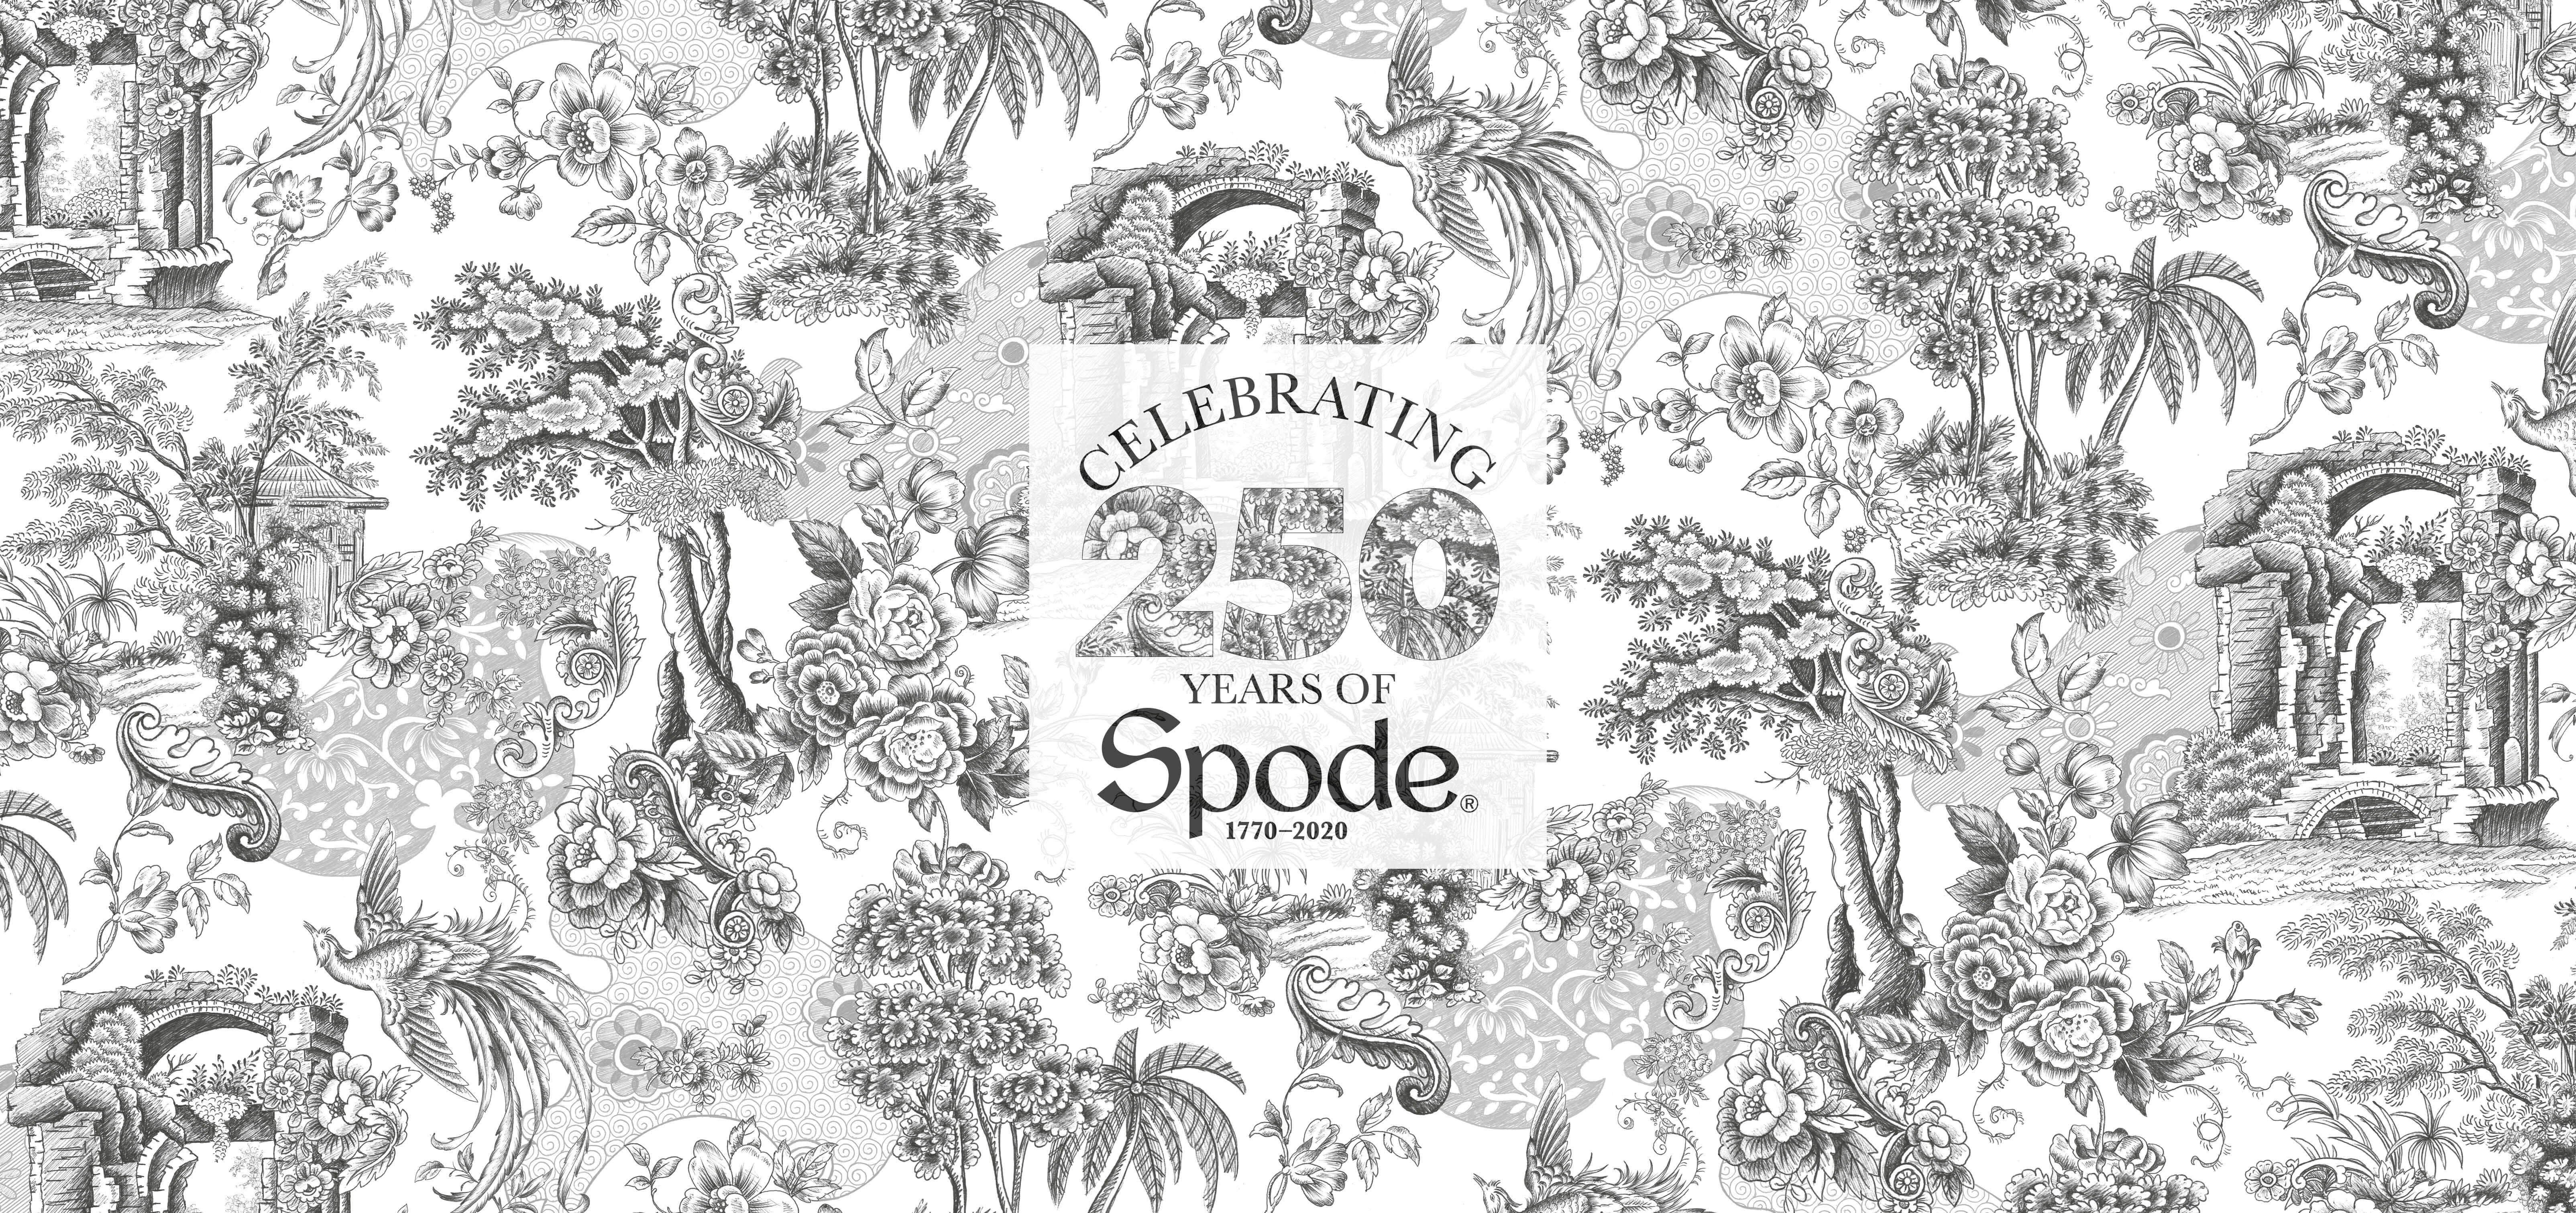 Spode 250th Anniversary